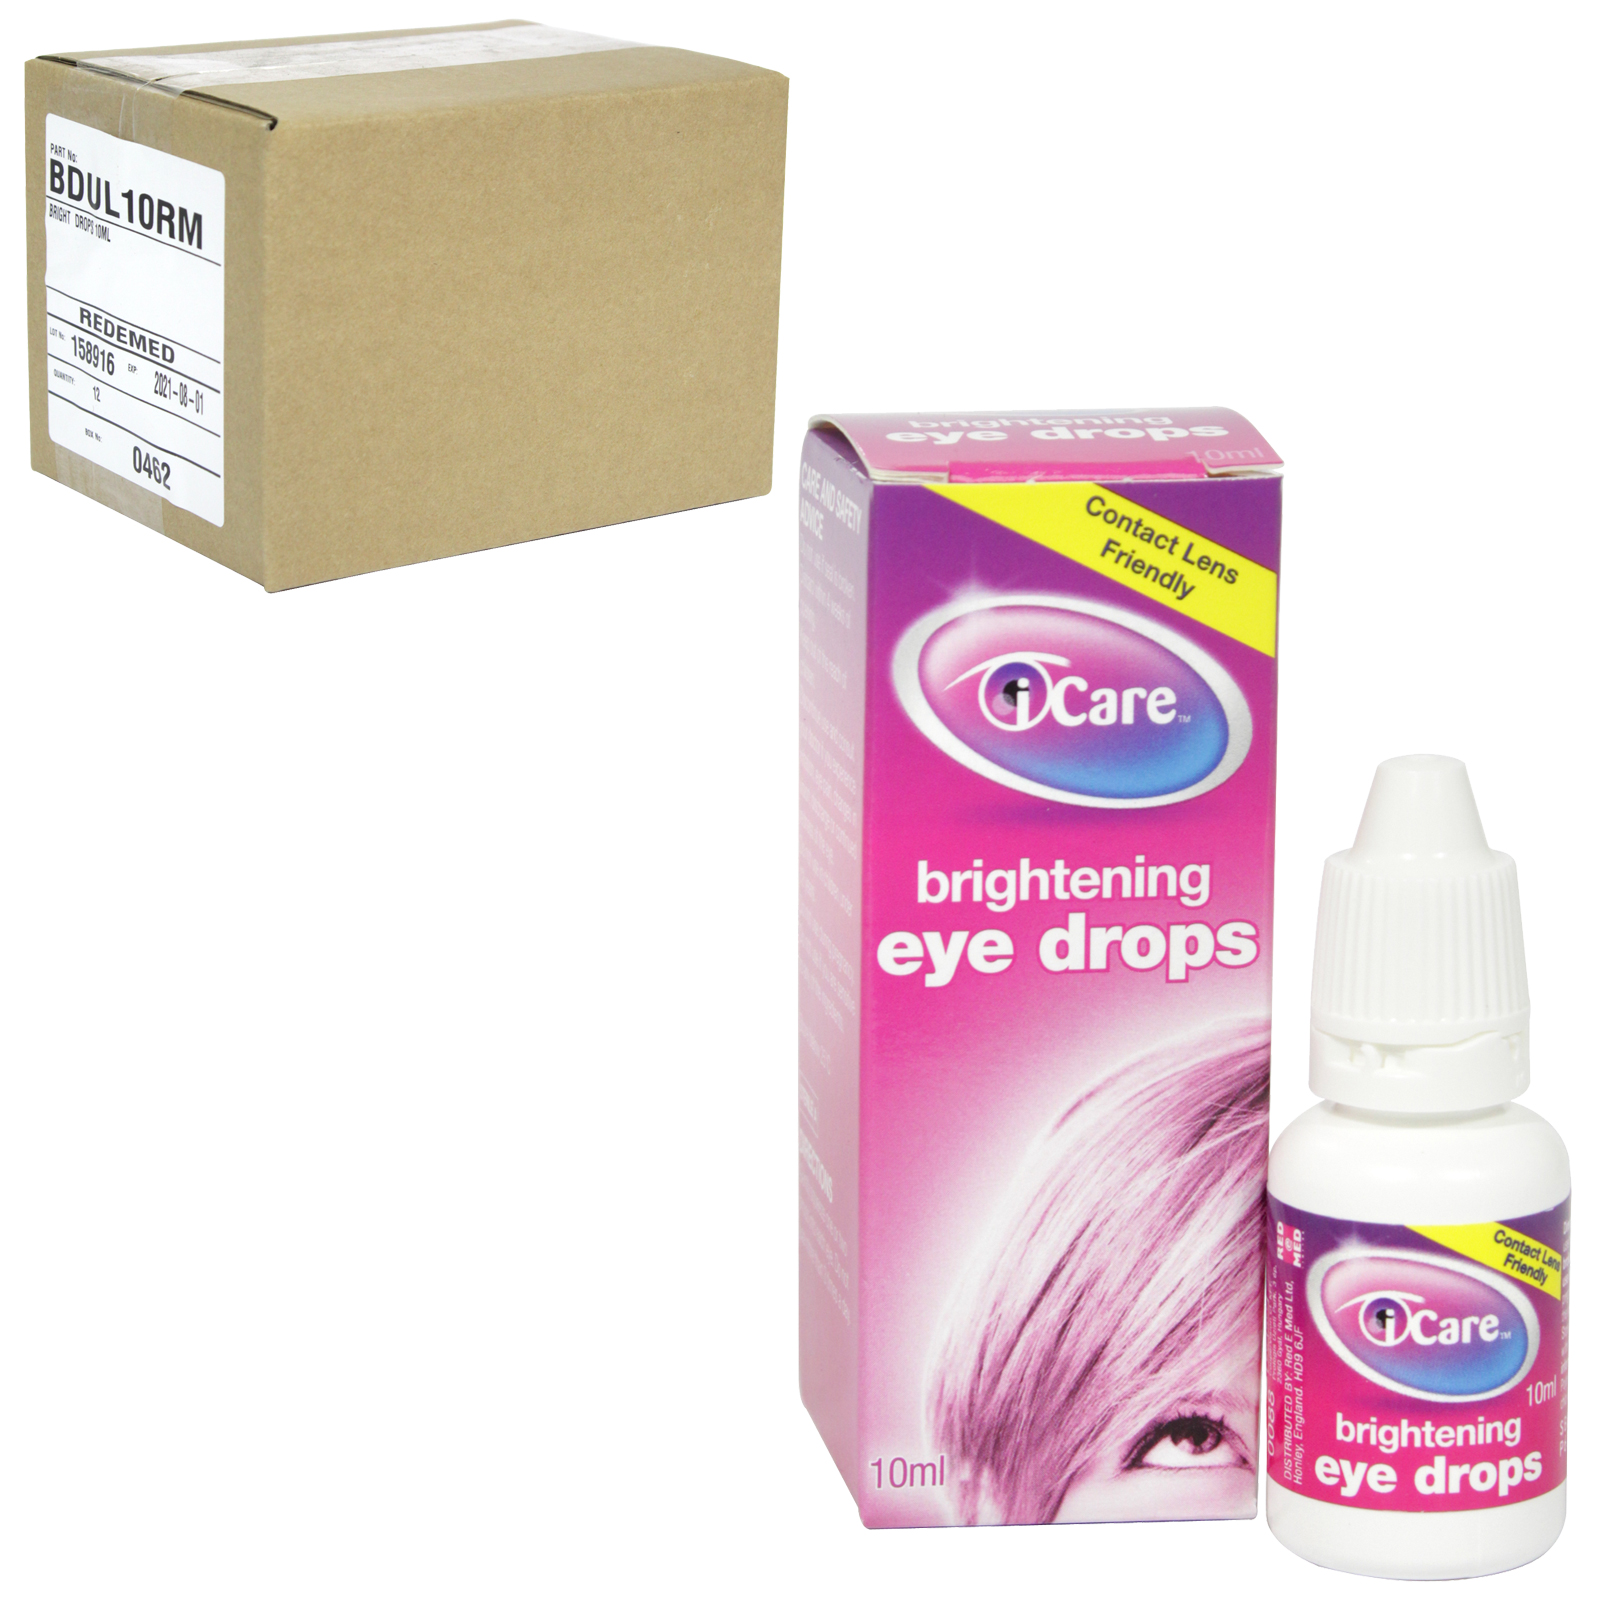 I-CARE EYE DROPS 10ML BRIGHTENING X12 (NON RETURNABLE)